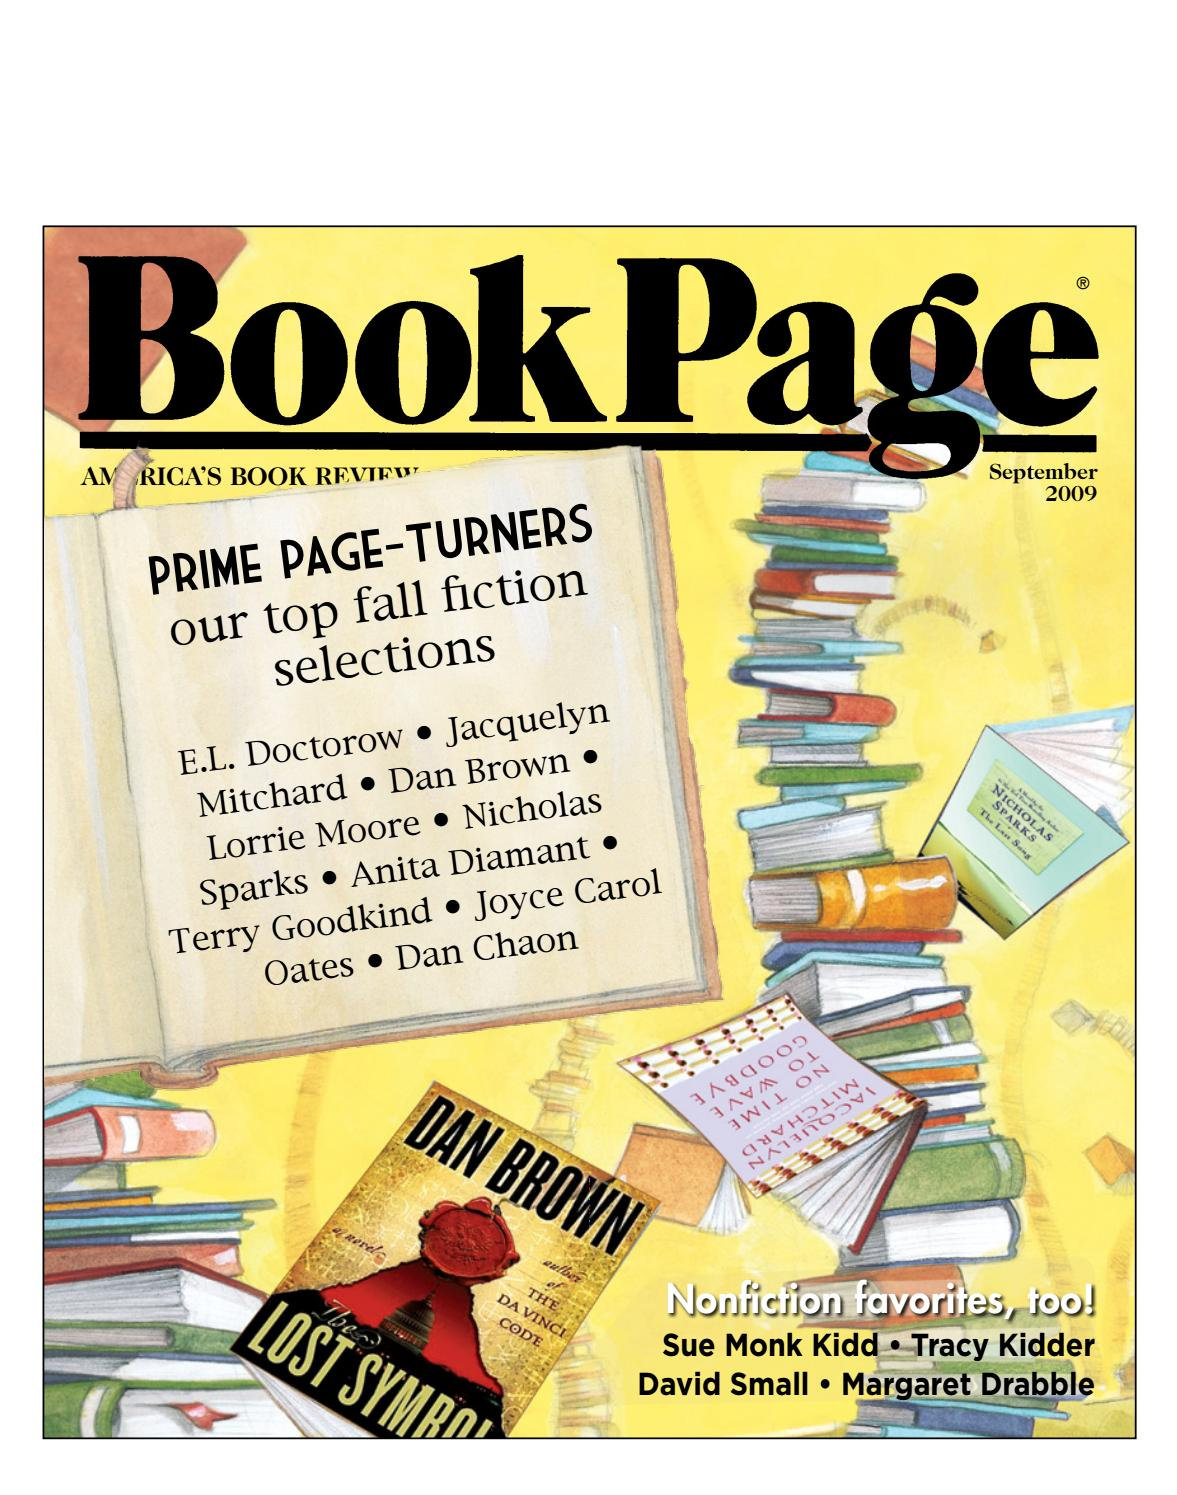 BookPage September 2009 by BookPage - issuu